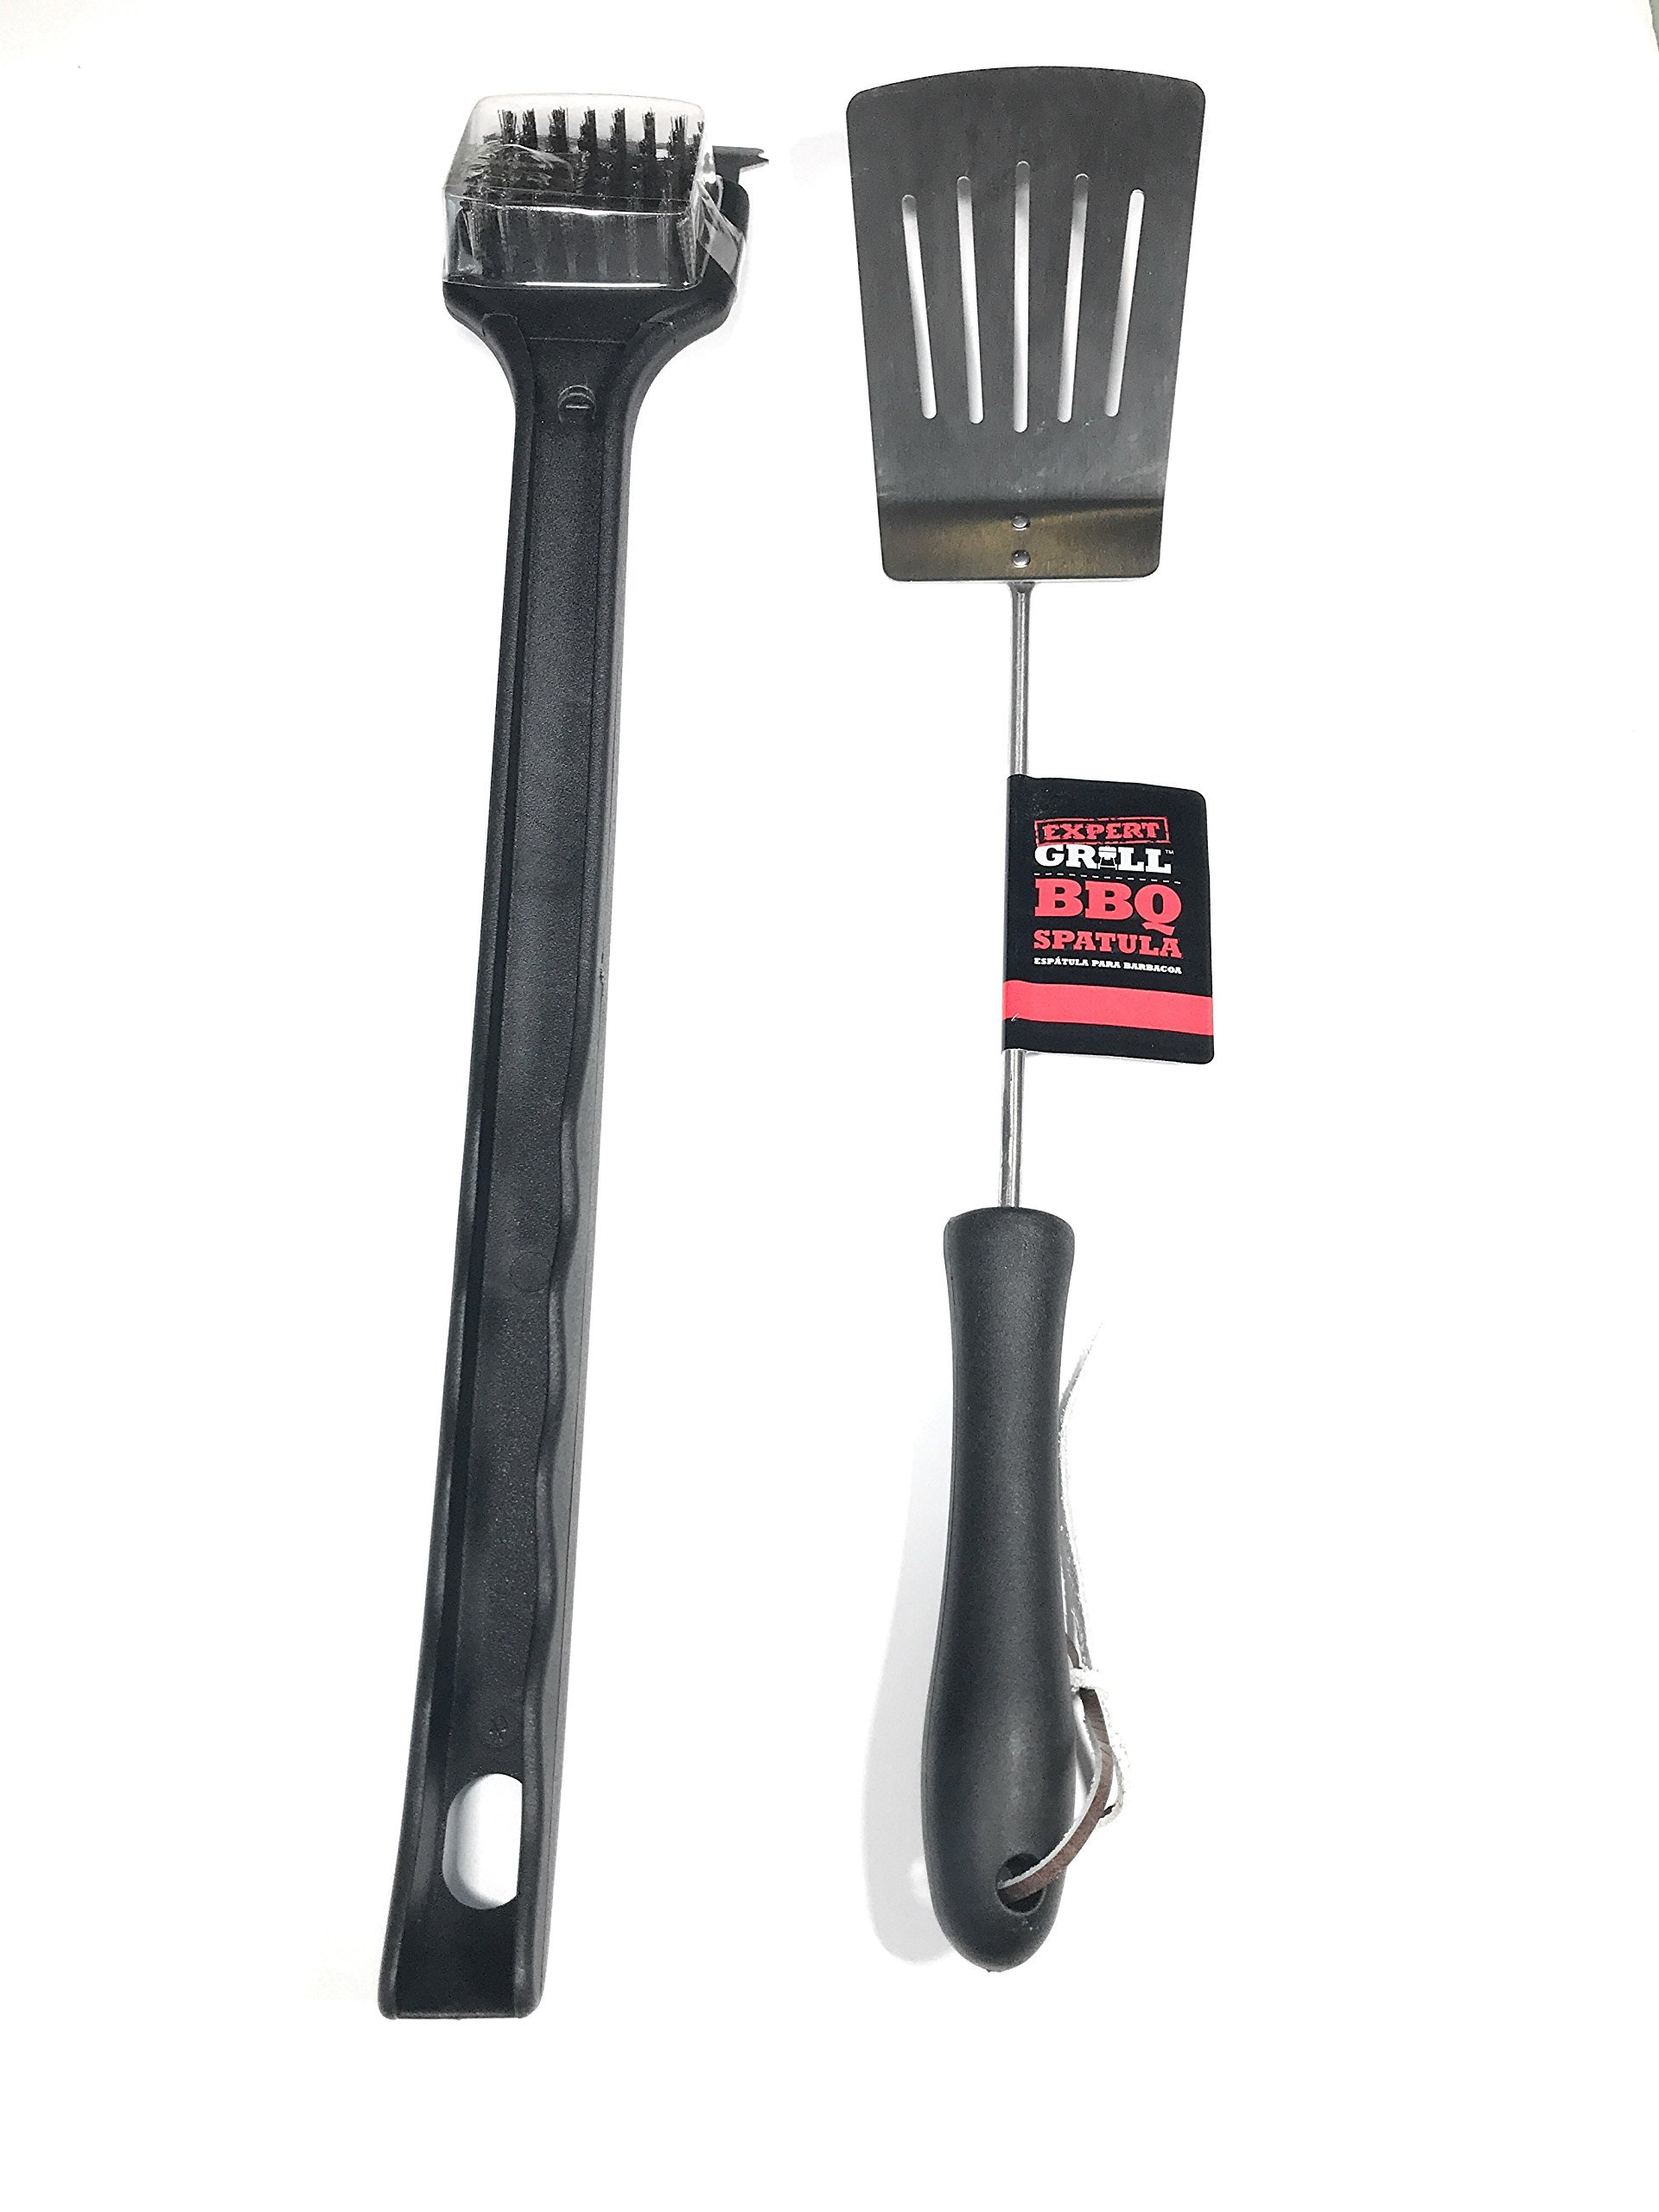 BBQ Grill Tools Set: Grill Brush Scraper with Grilling Spatula - Stainless Steel - Outdoors Camping Tailgate - Bundle - Great Barbecue Accessories